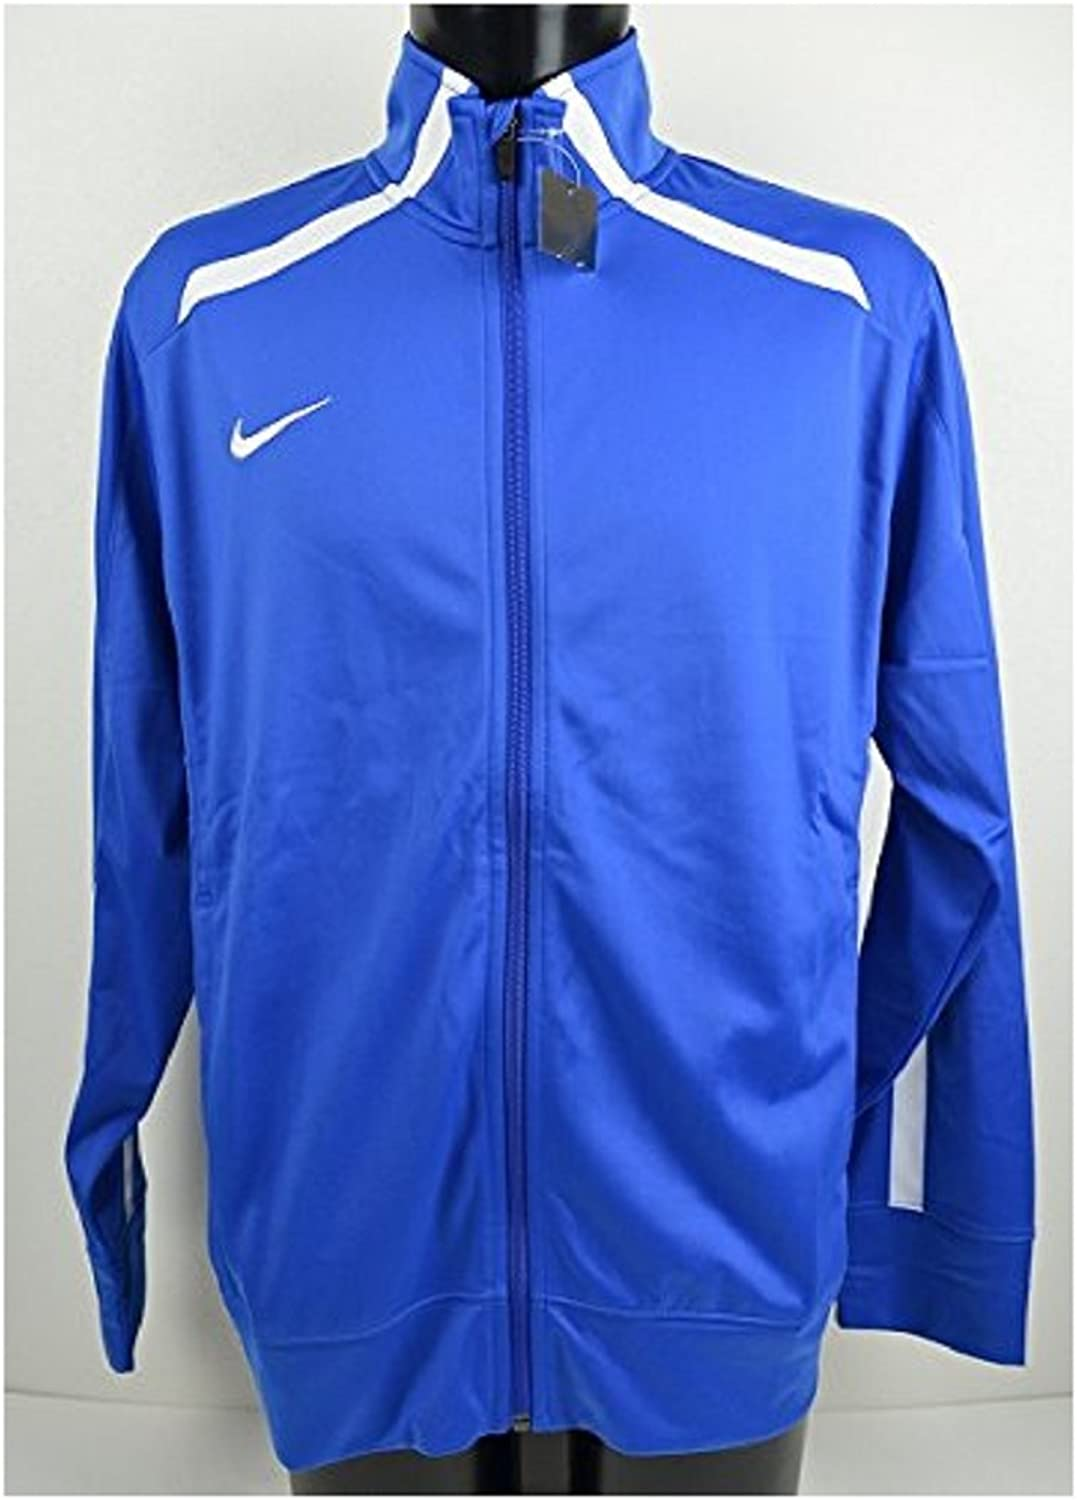 NIKE Nike DRIFIT dry fit jacket jersey on the men's XL (176185cm) longsleeved genuine national 728,028 blueee × White